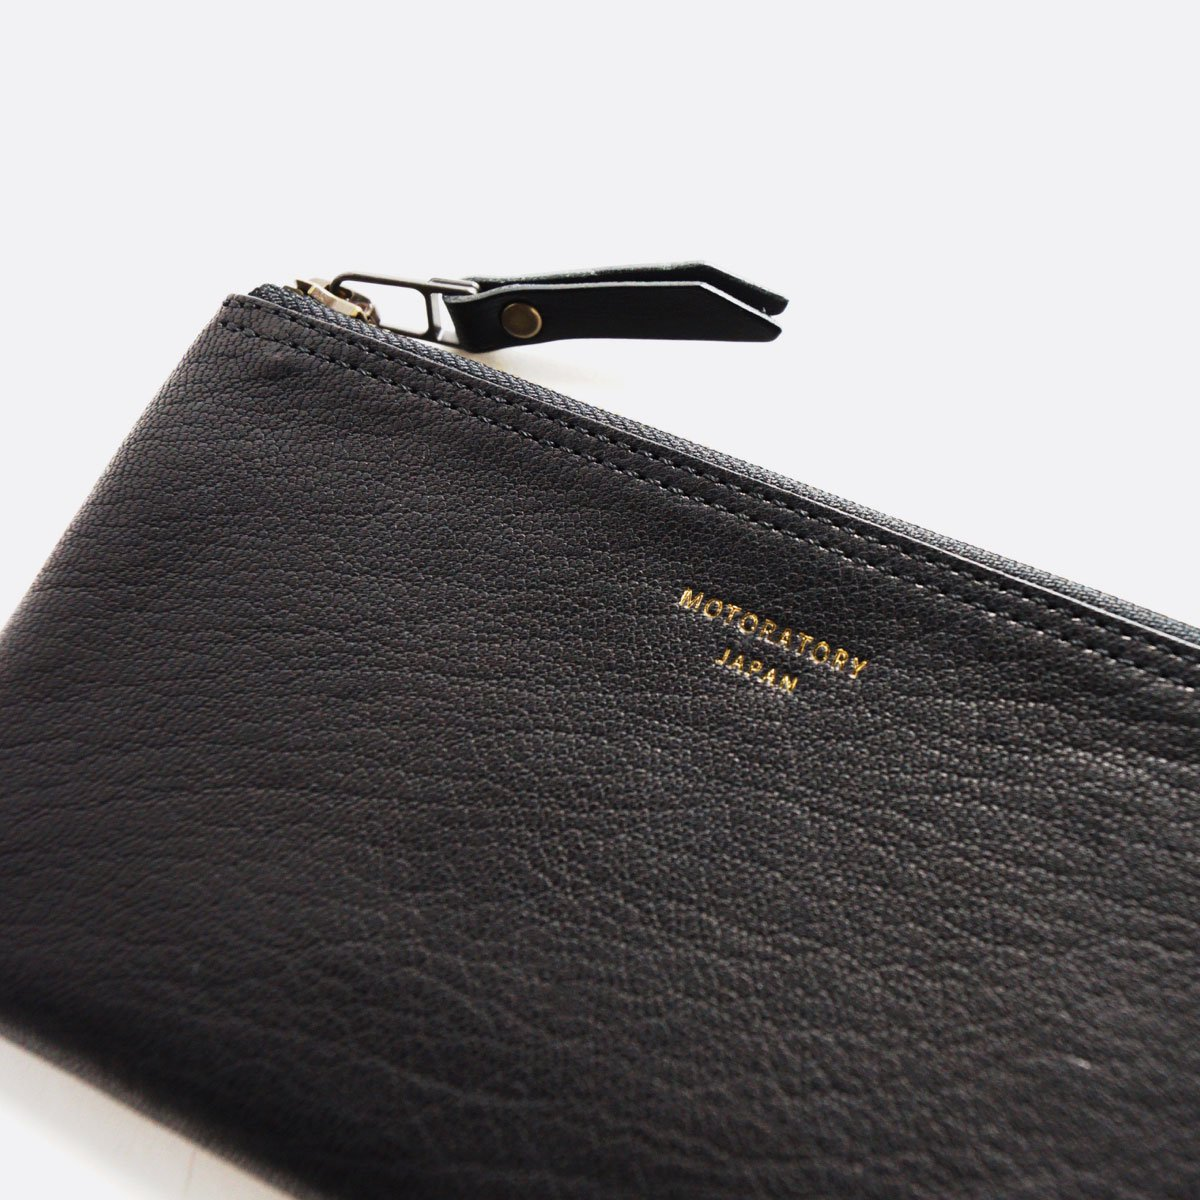 MOTO GOAT LEATHER WALLET Y003  (BLACK)2